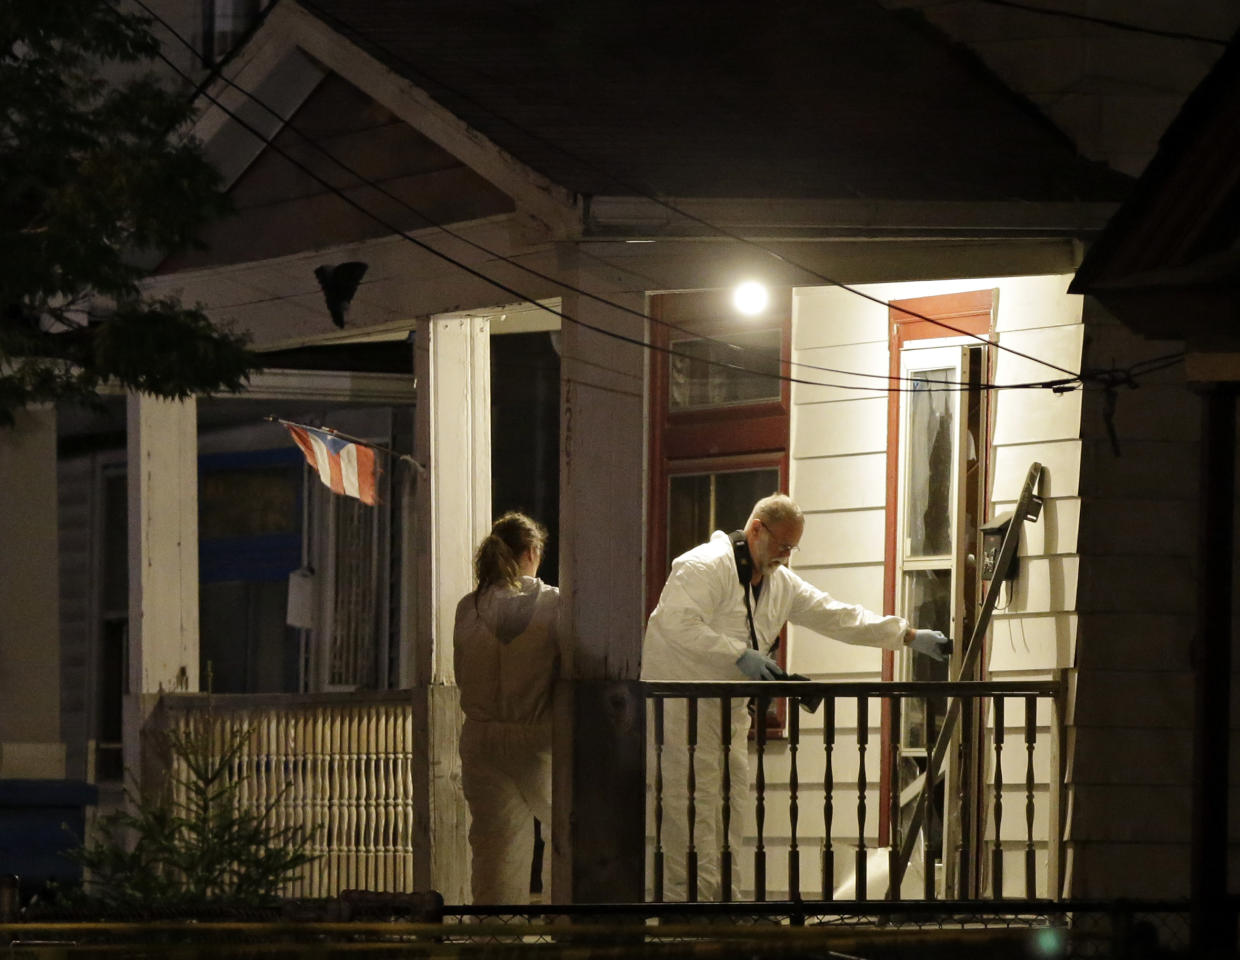 Investigators enter a house on the west side of Cleveland Monday, May 6, 2013 where police say three women were found. The women who went missing separately about a decade ago, when they were in their teens or early 20s, were found alive in the house, and a man was arrested. (AP Photo/Mark Duncan)